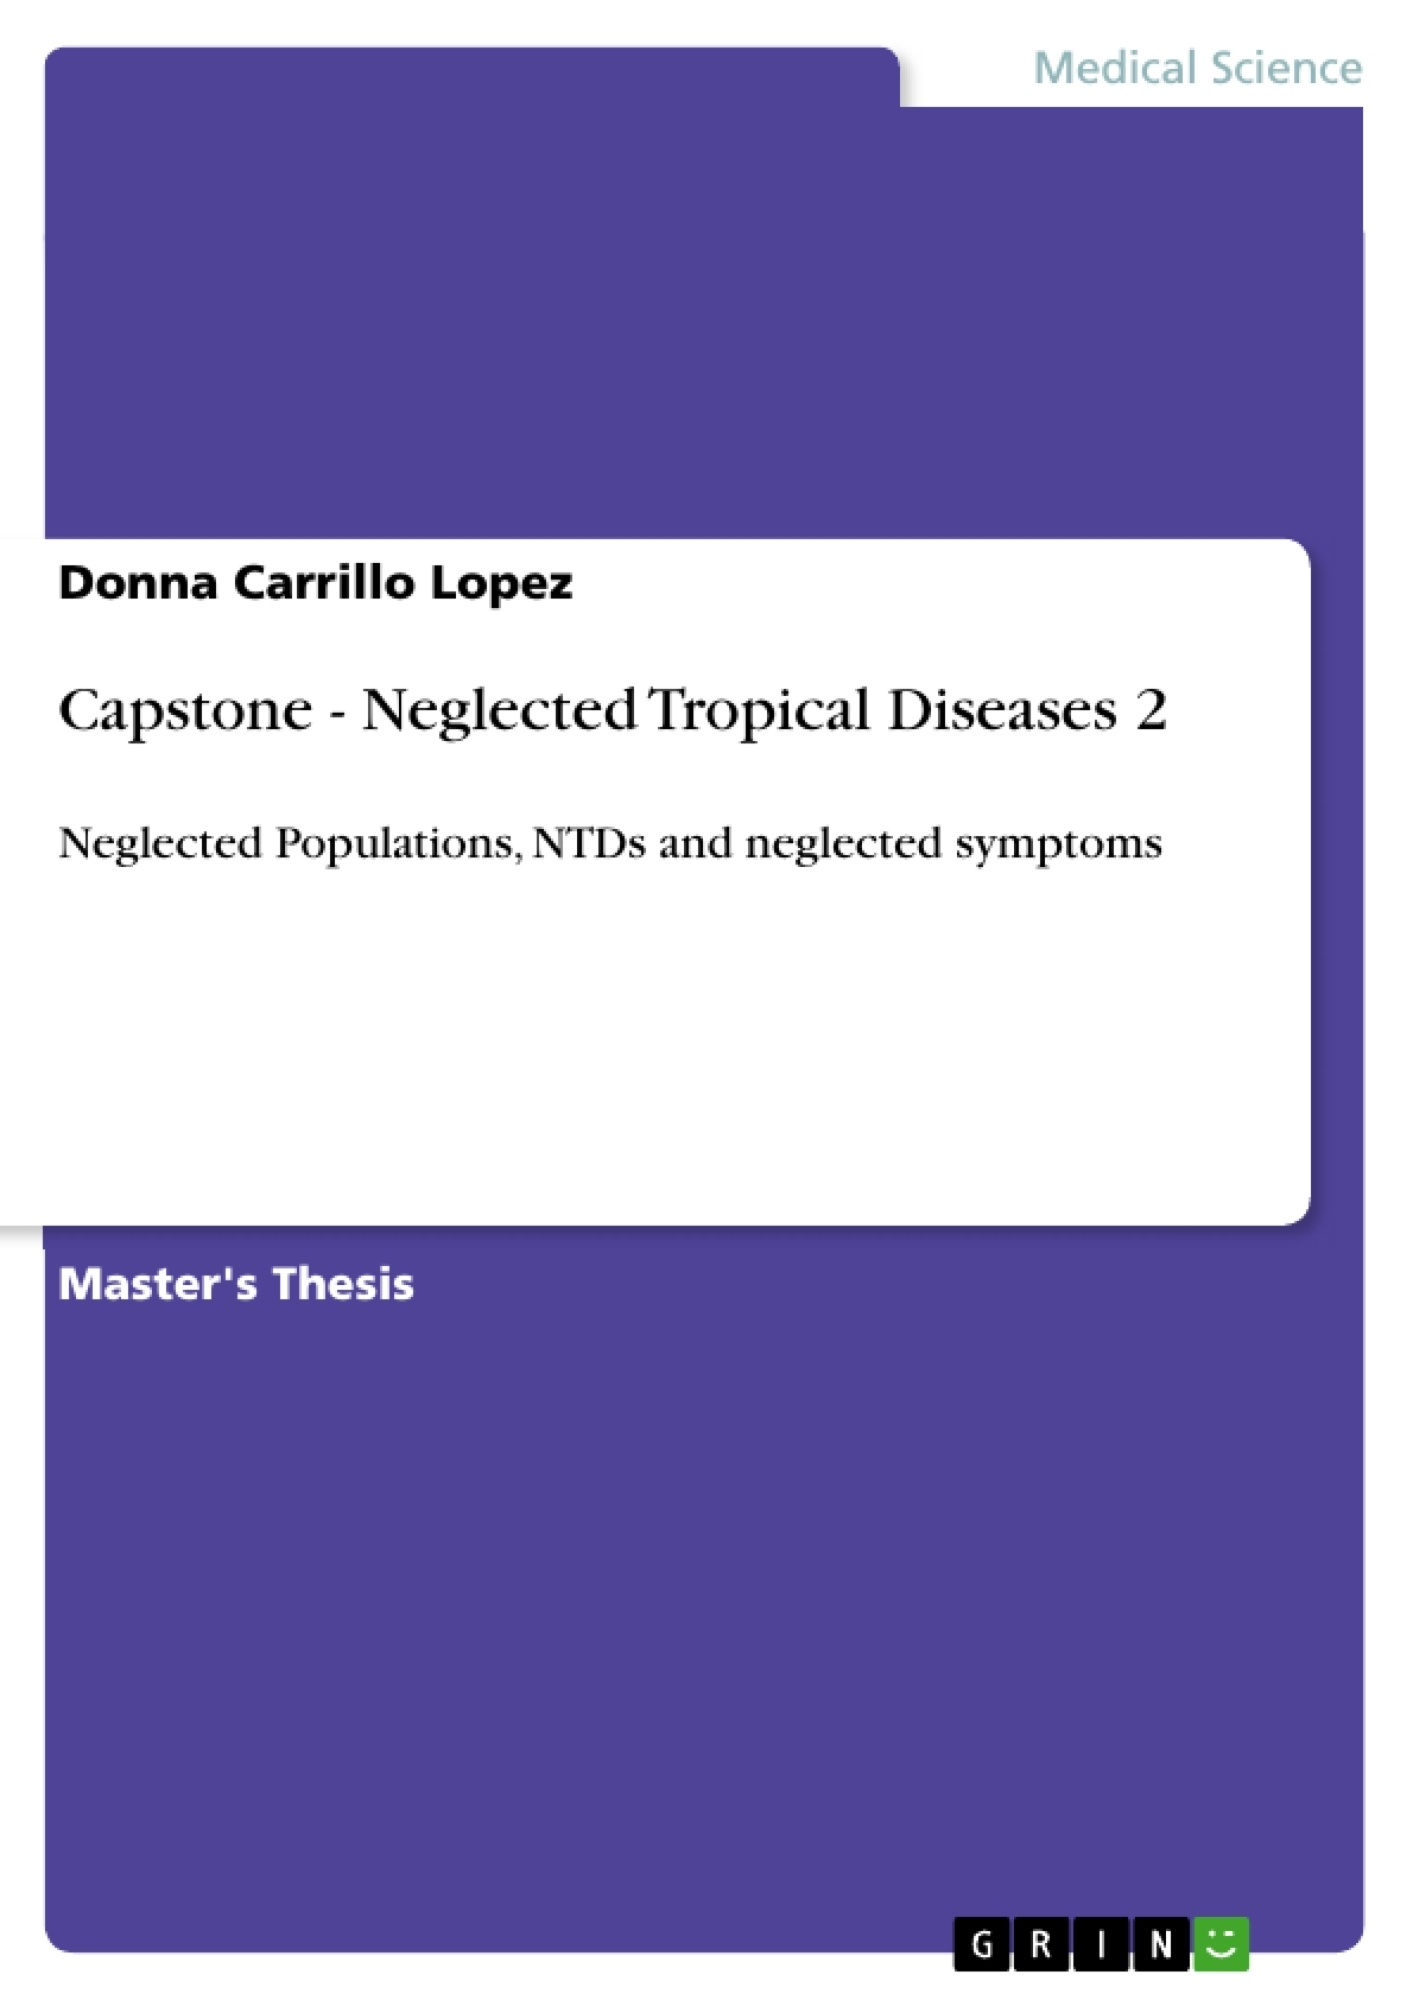 Title: Capstone - Neglected Tropical Diseases 2